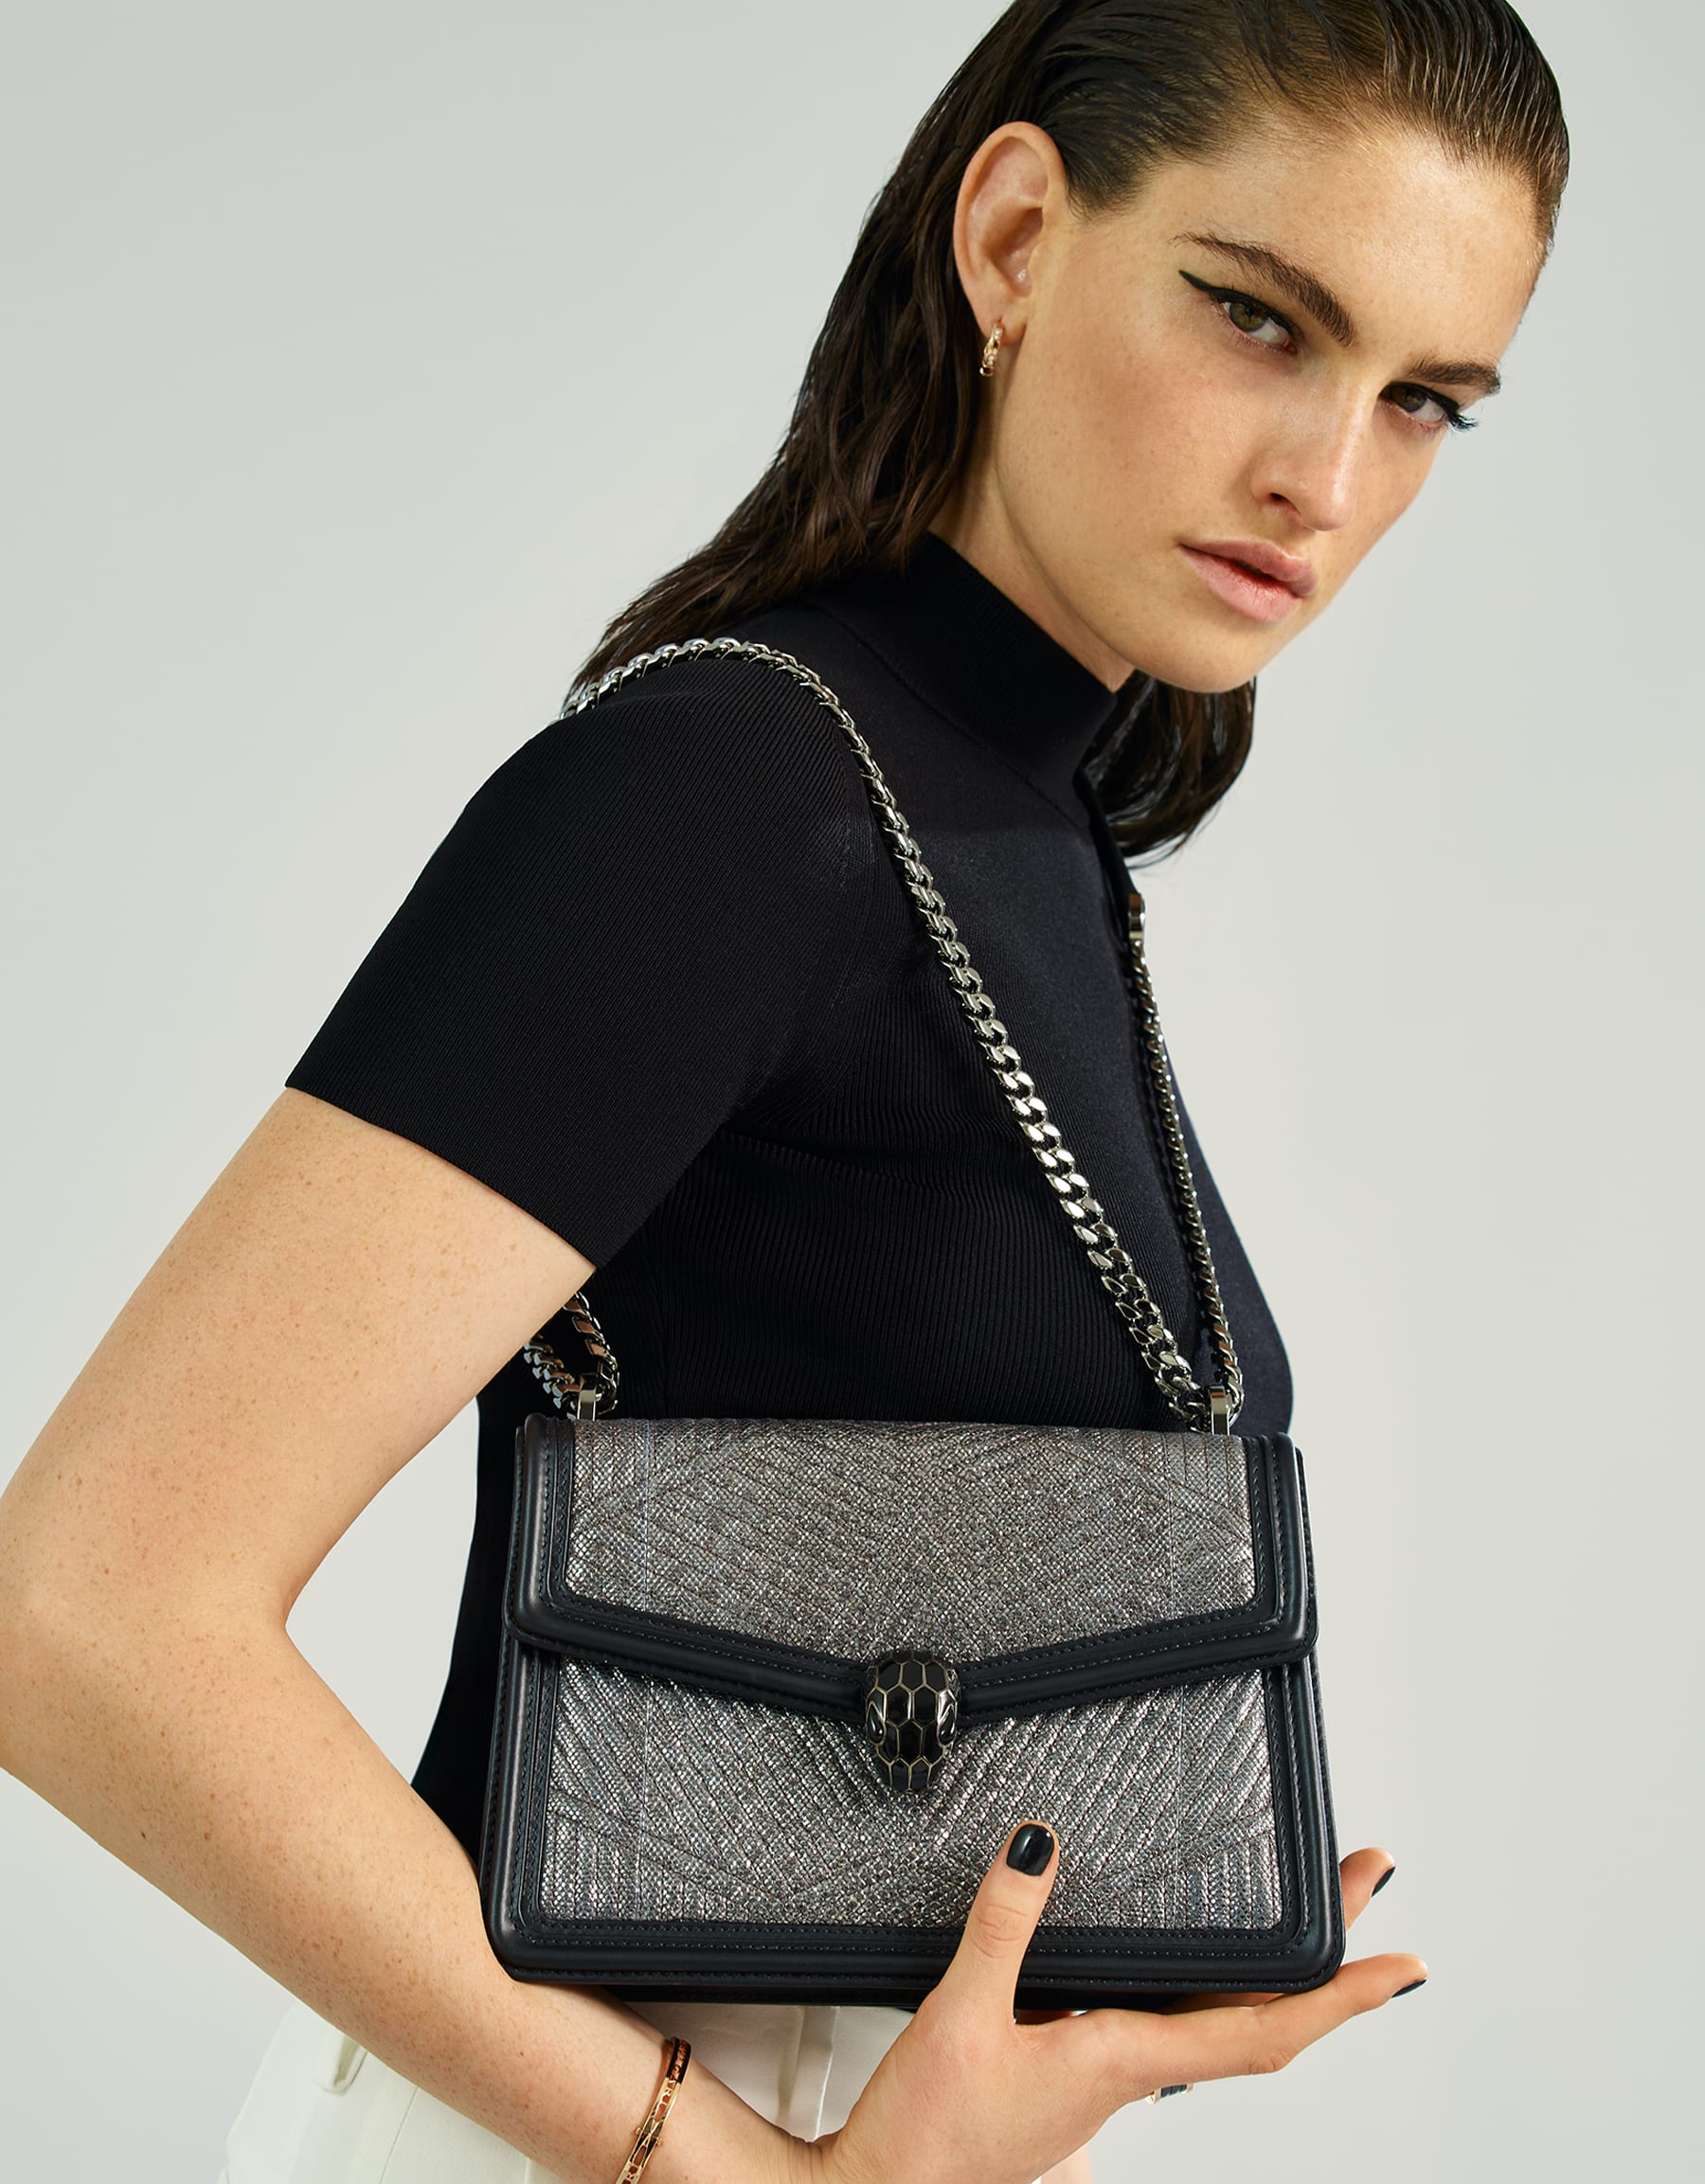 """Serpenti Diamond Blast"" shoulder bag in charcoal diamond quilted metallic karung skin and black calf leather frames. Iconic snake head closure in dark ruthenium plated brass enriched with black enamel and black onyx eyes. 289478 image 5"